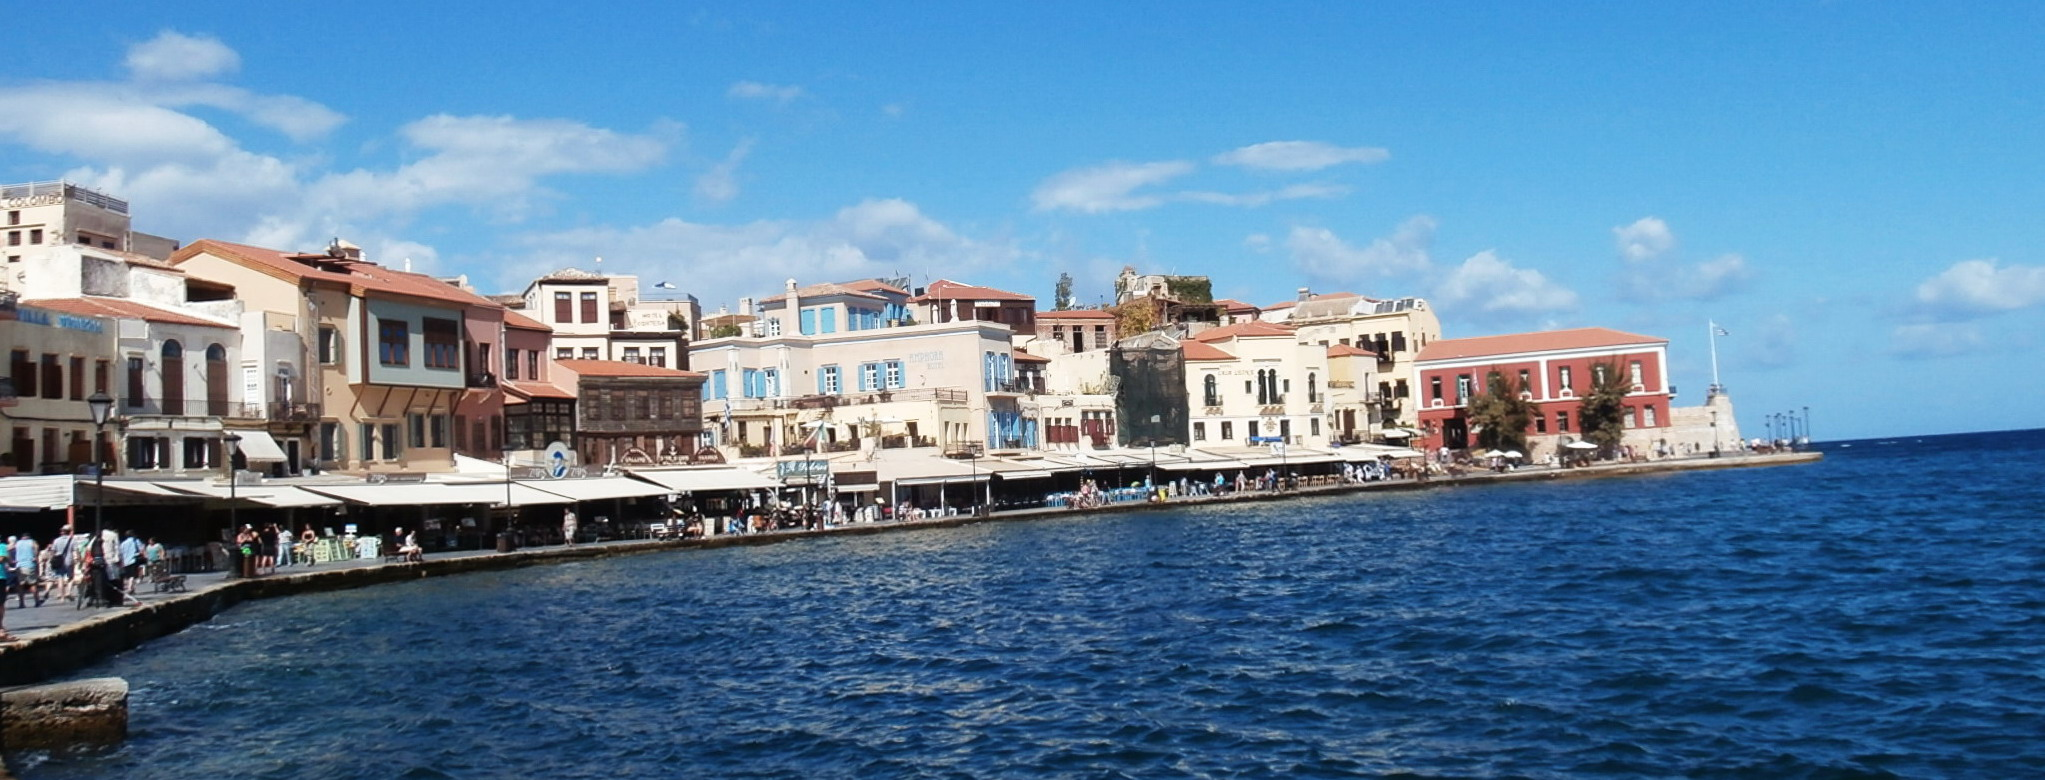 Kalli'mera Kríti! – CRETE – Flowing with Olive Oil and Honey – PART 2